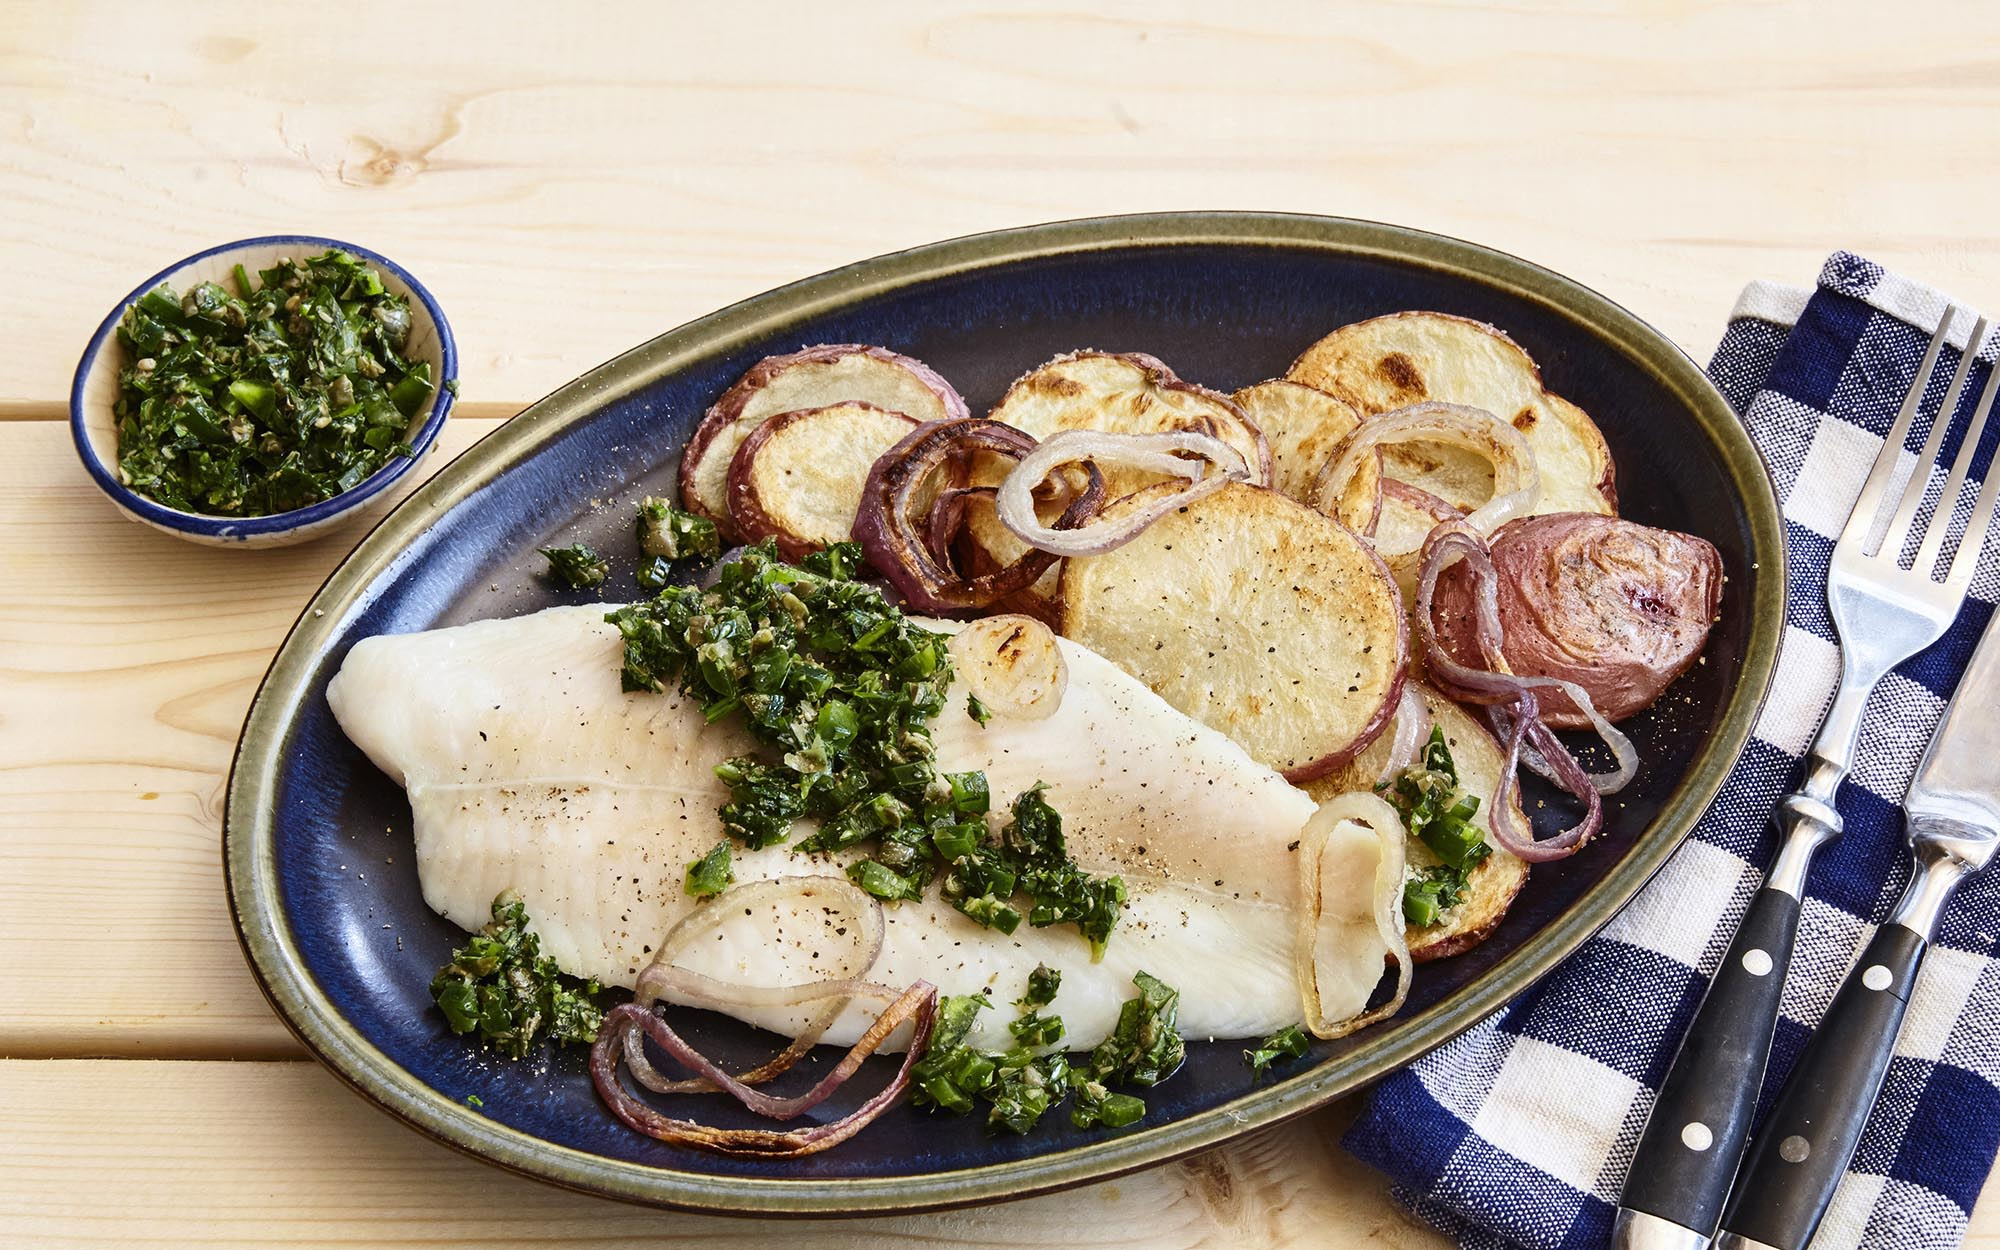 Baked Basa with Chimichurri Sauce